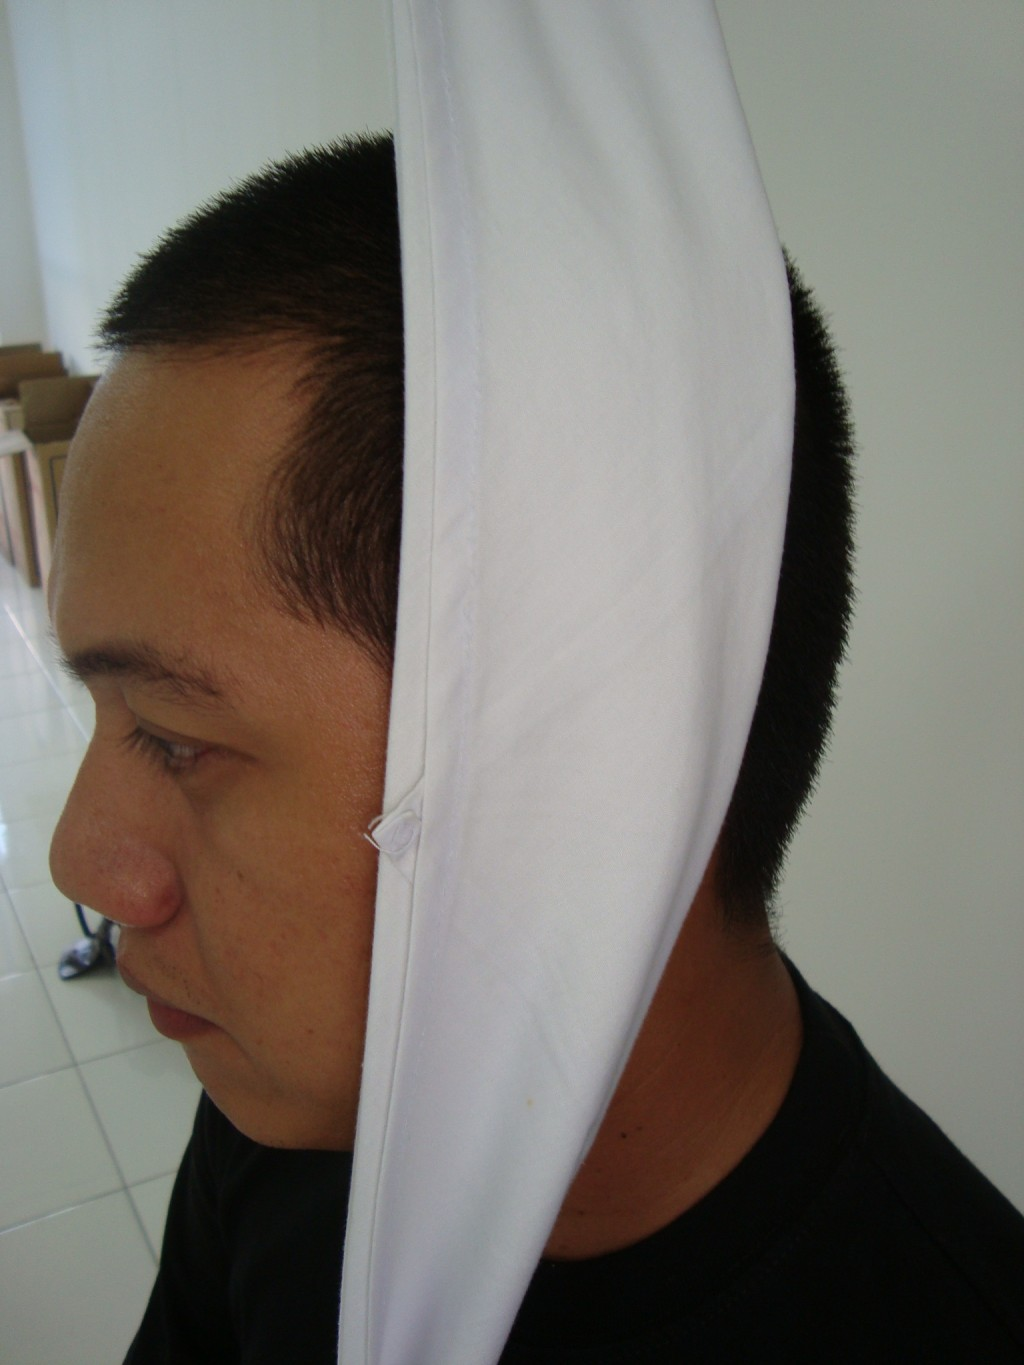 HOW TO APPLY FOR EAR OR CHEEK BANDAGE | hubpages